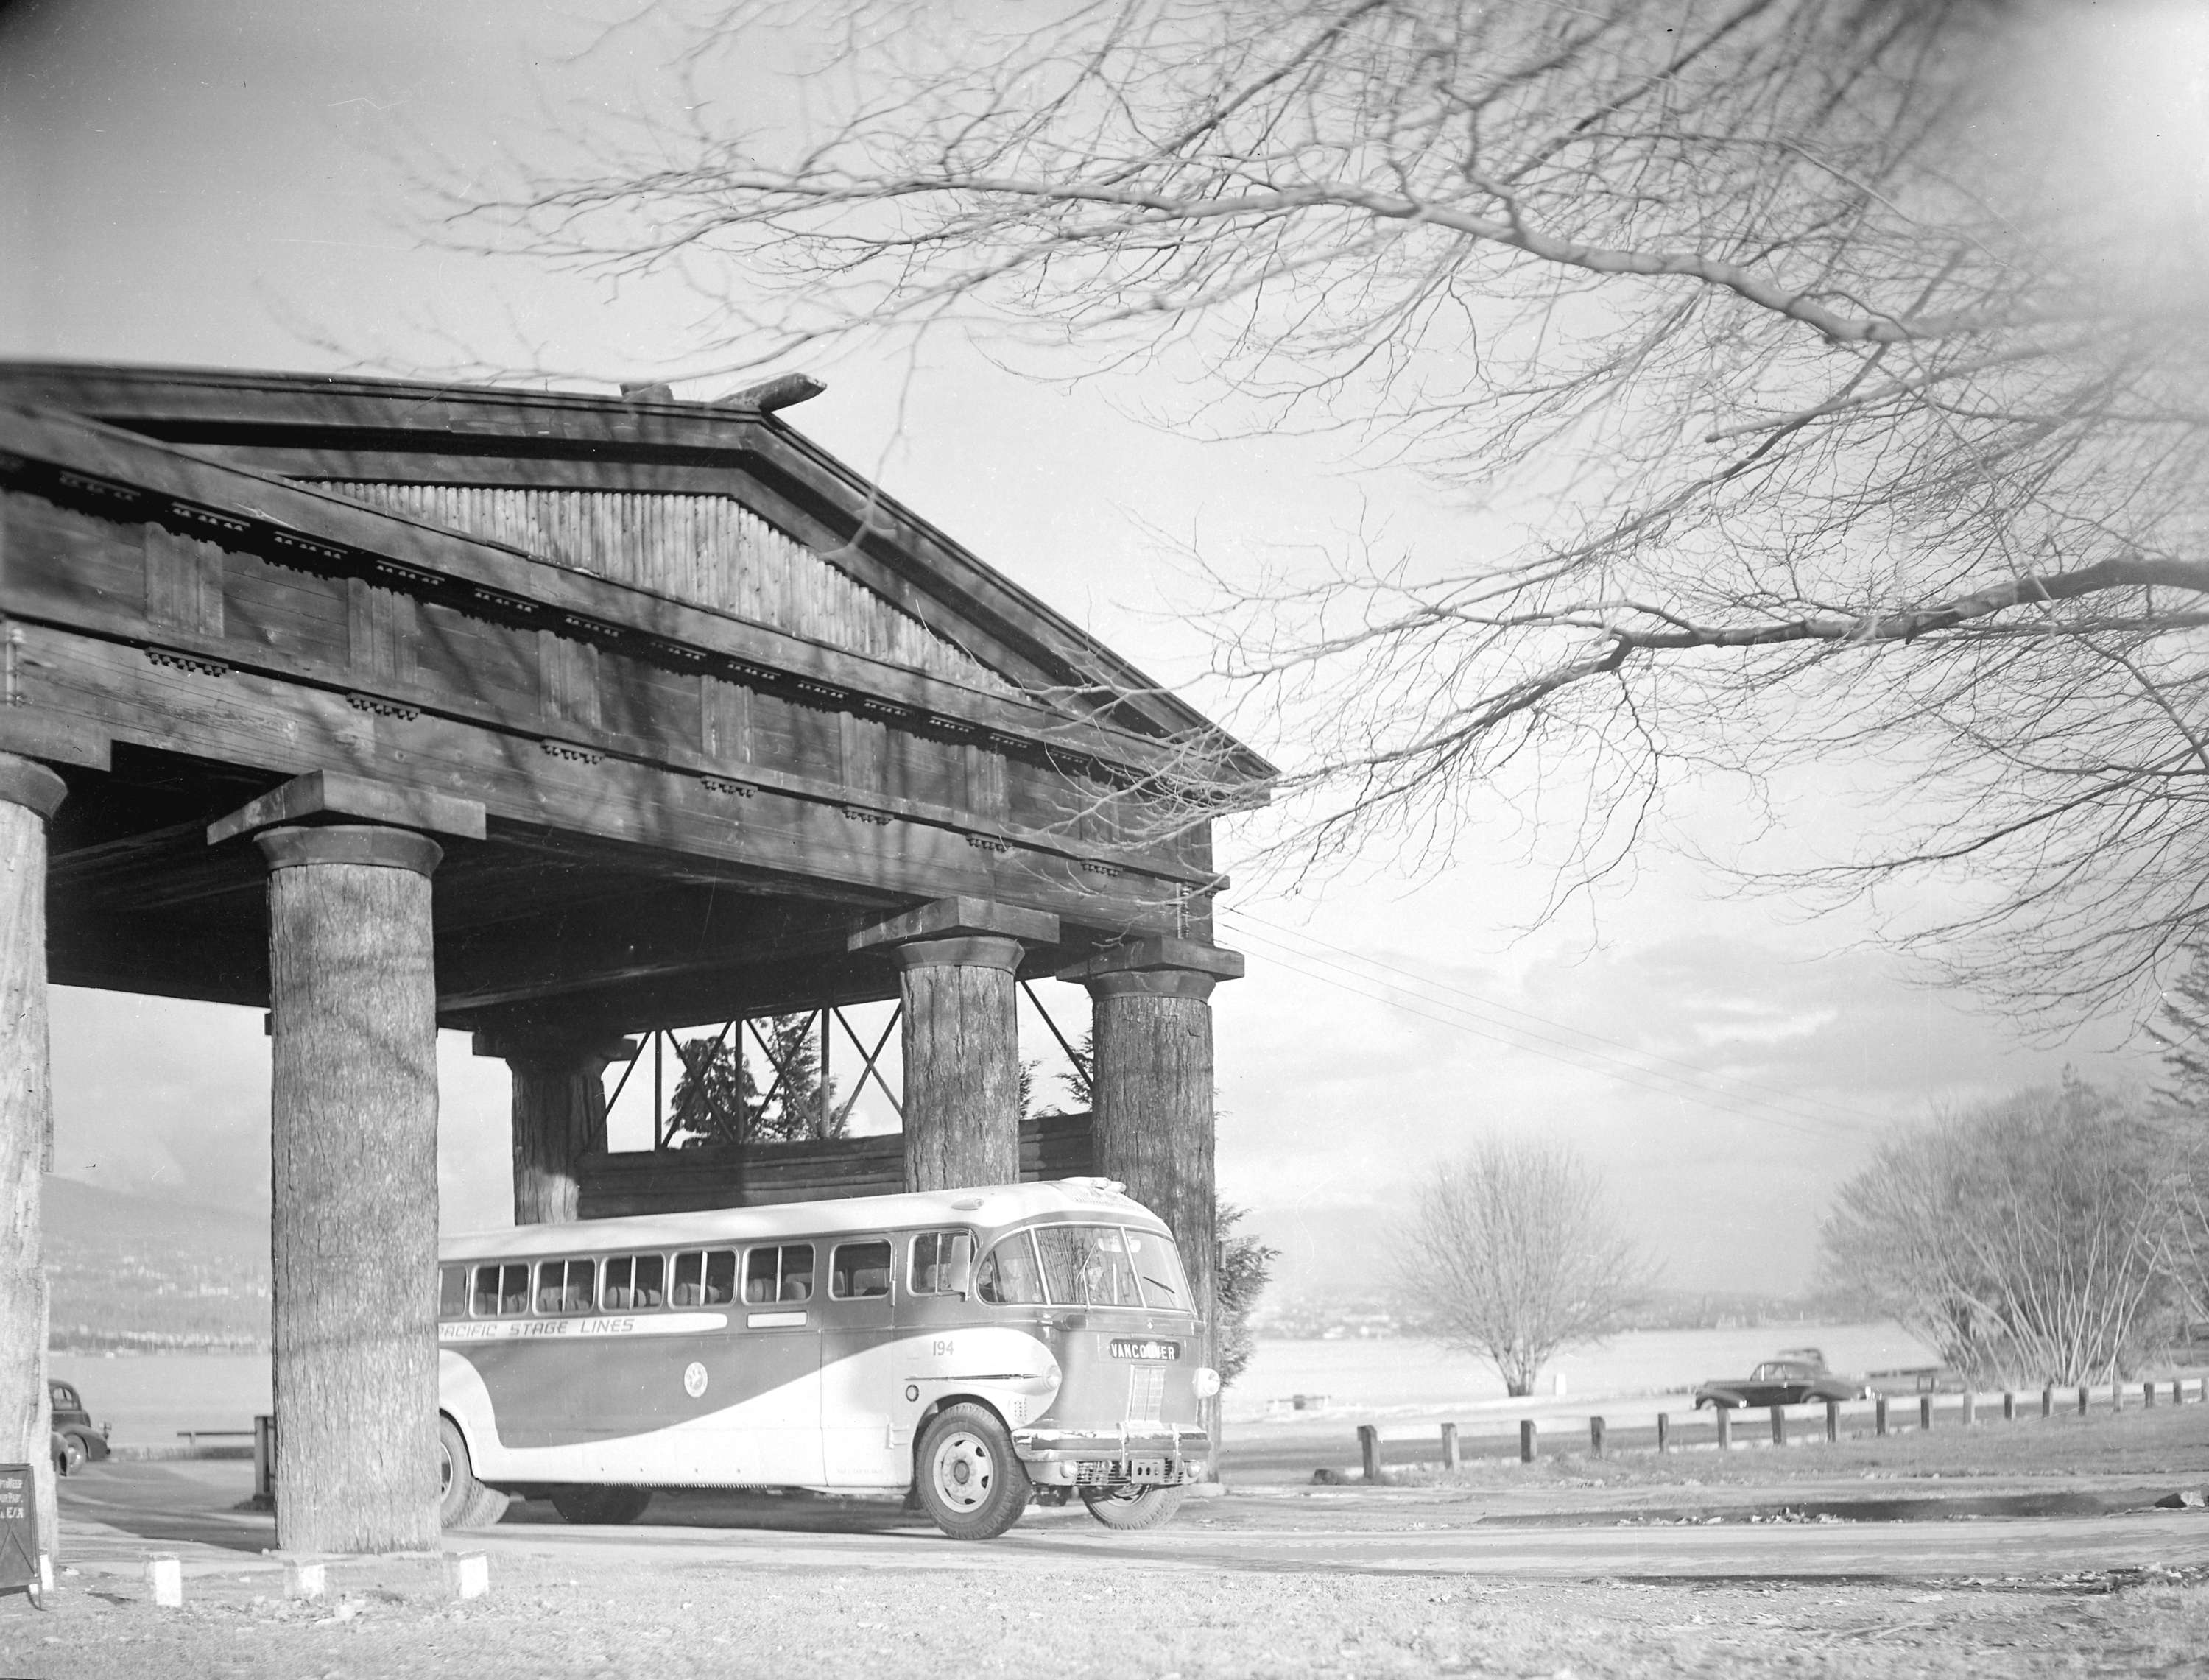 Museum of Vancouver Vancouver, New Pacific Stage bus [under Lumberman's Arch] - City of Vancouver ...